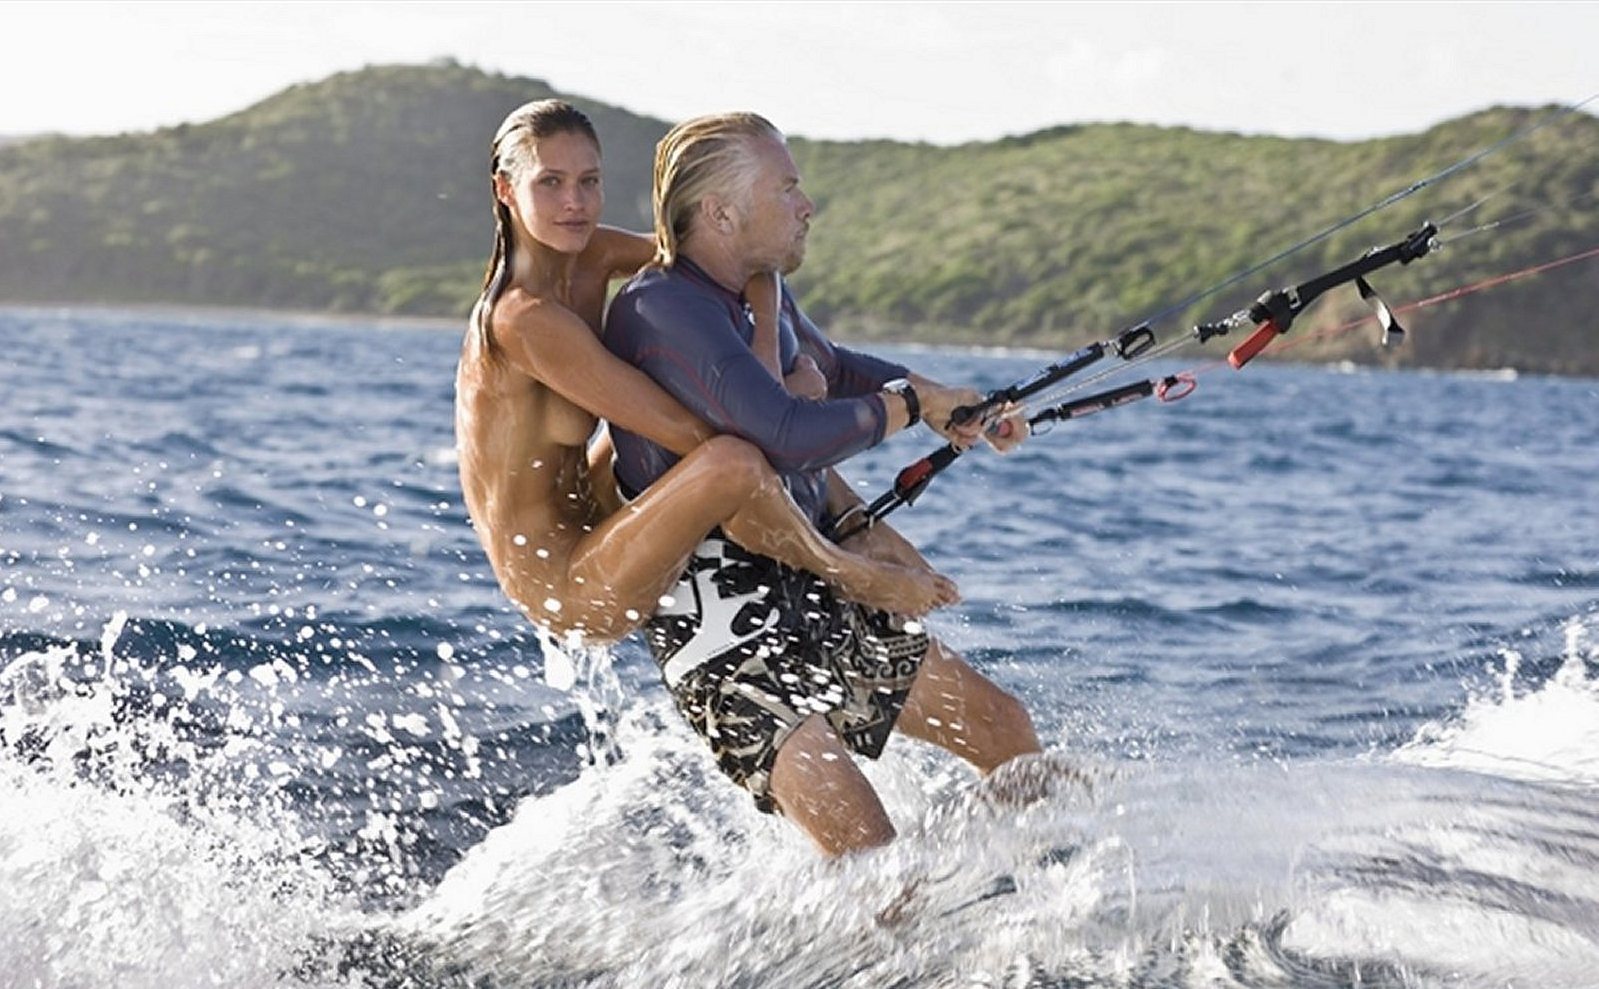 To train our core most of us use free weights while others prefer to kitesurf with naked supermodels on their back. Legend Sir Richard Branson kitesurfing with a naked supermodel on his back.